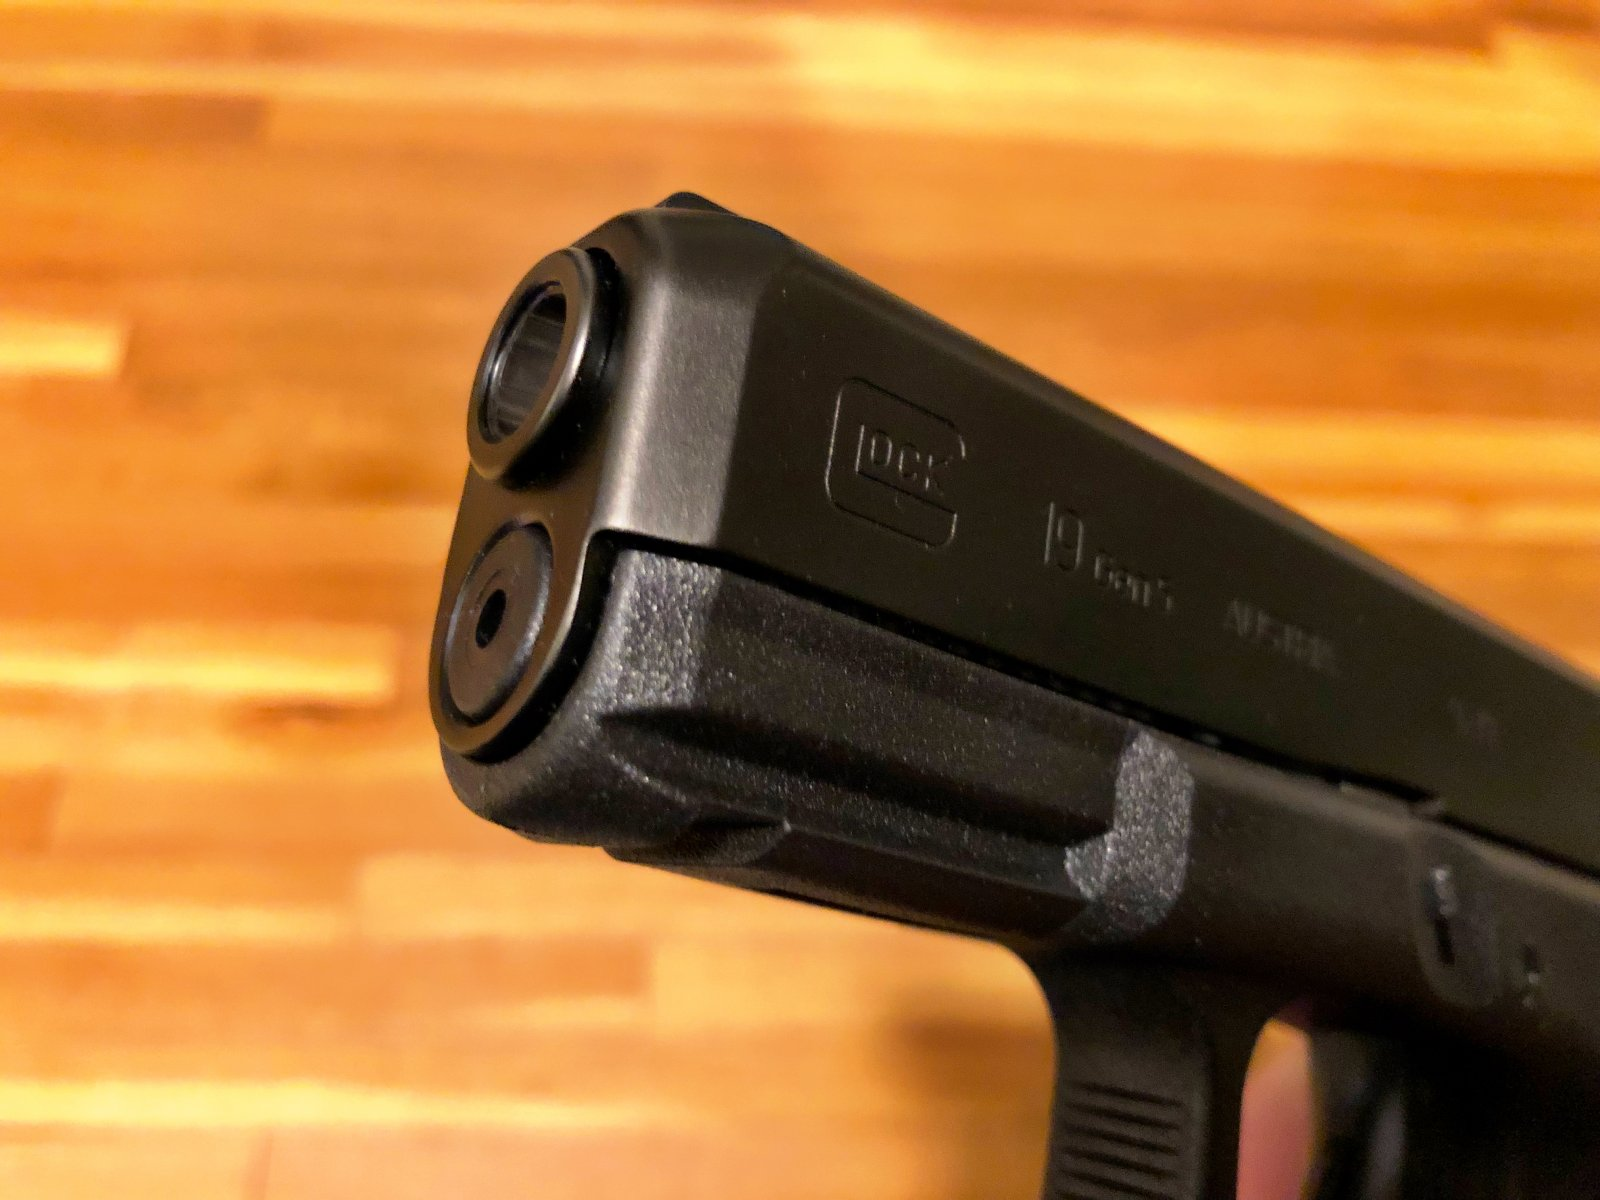 Glock 19 - Gen 5 changes | The Leading Glock Forum and